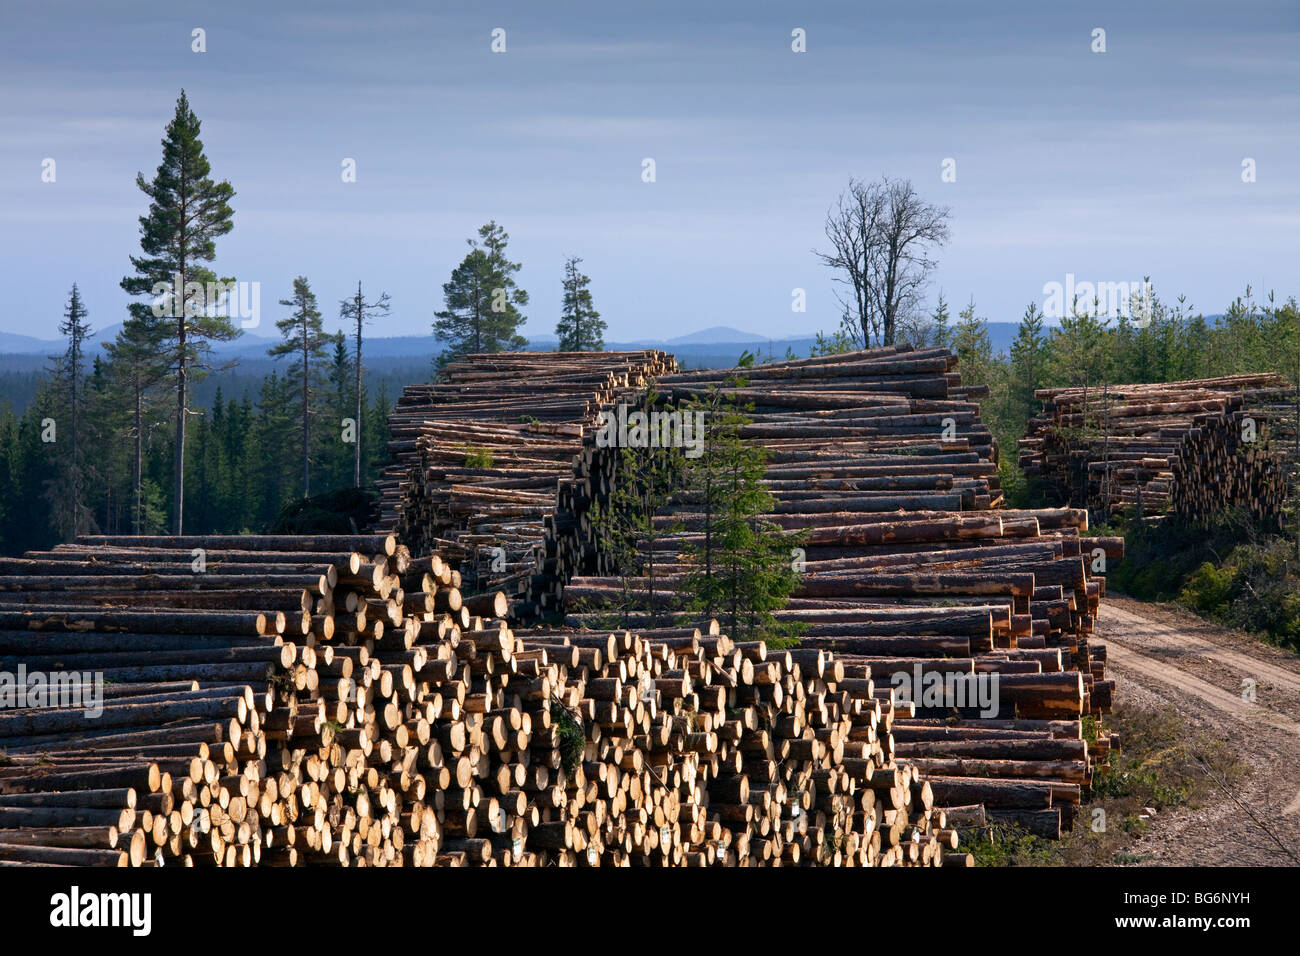 Deforestation by logging industry showing piles of cut for Pine tree timber